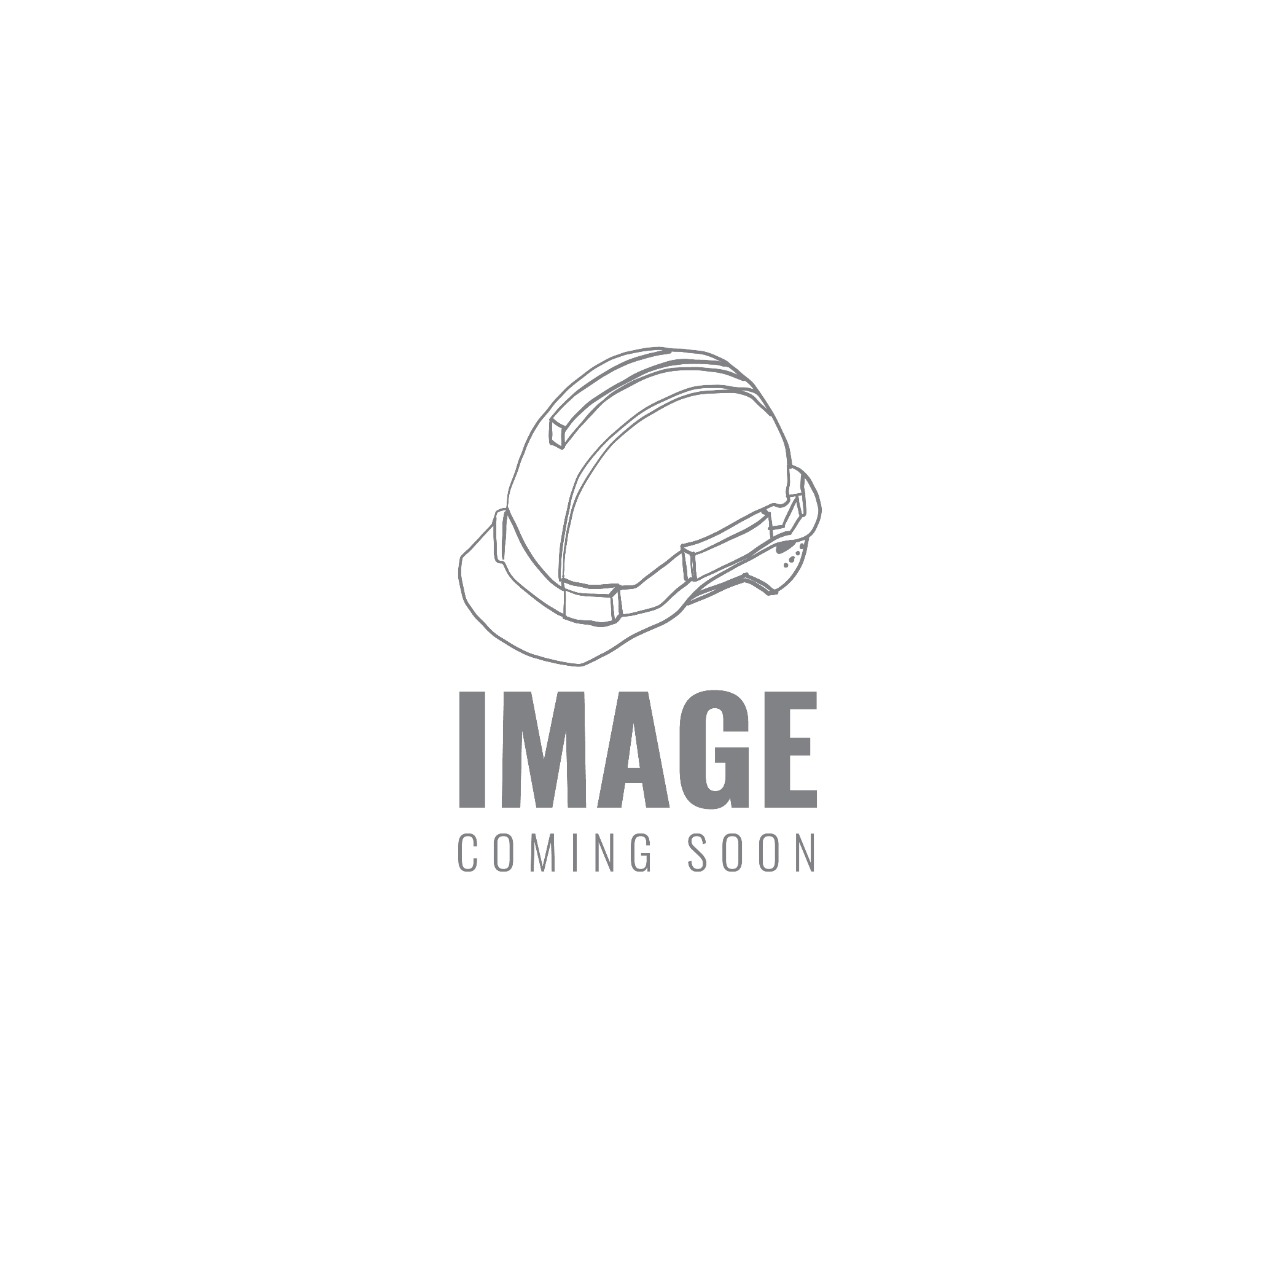 Apex2 Personal Air Sampling Pump